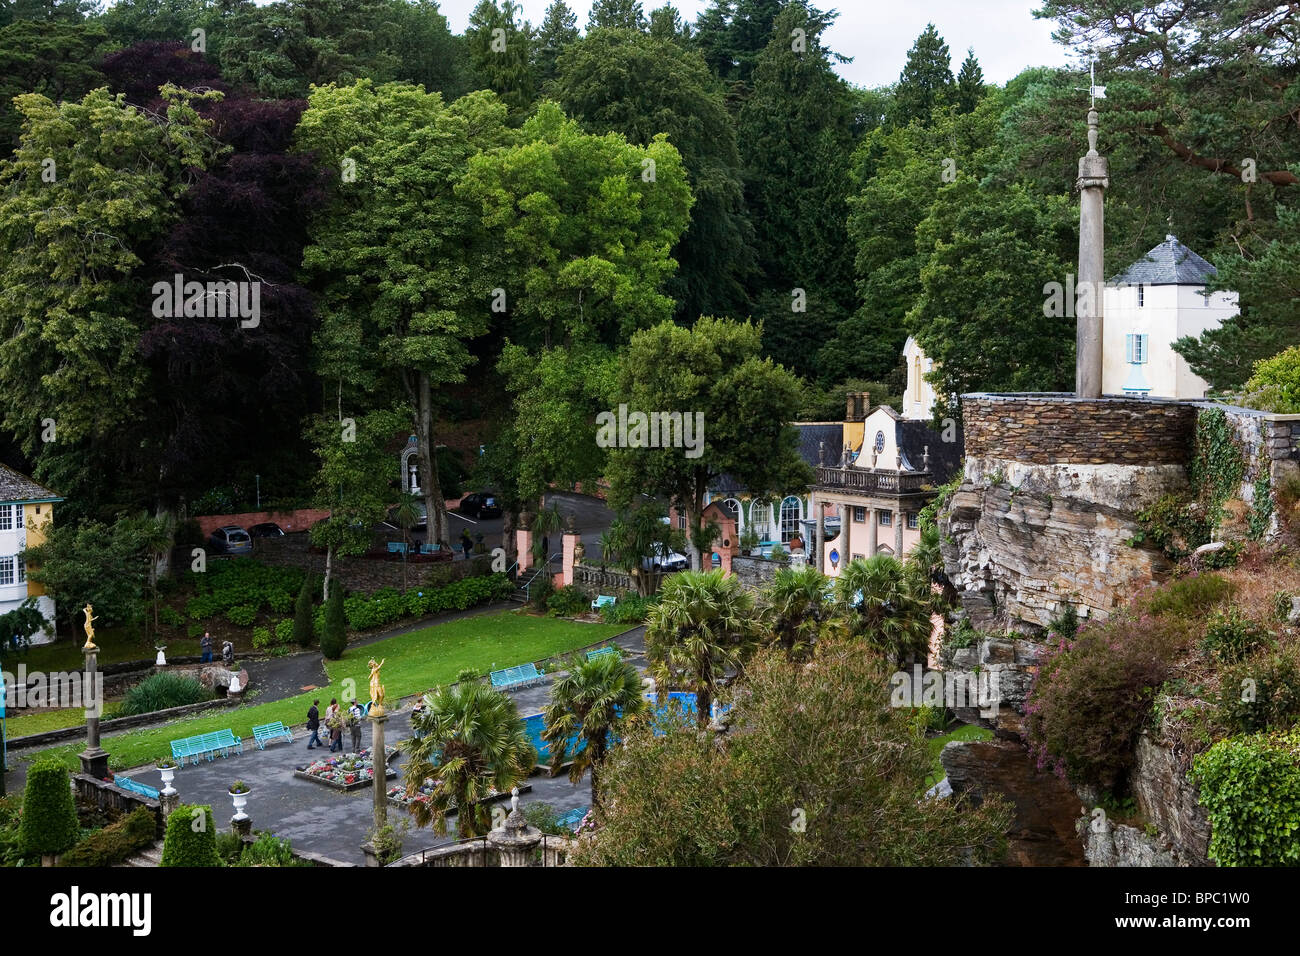 Portmeirion Italianate Village Gwynedd Wales UK Stock Photo